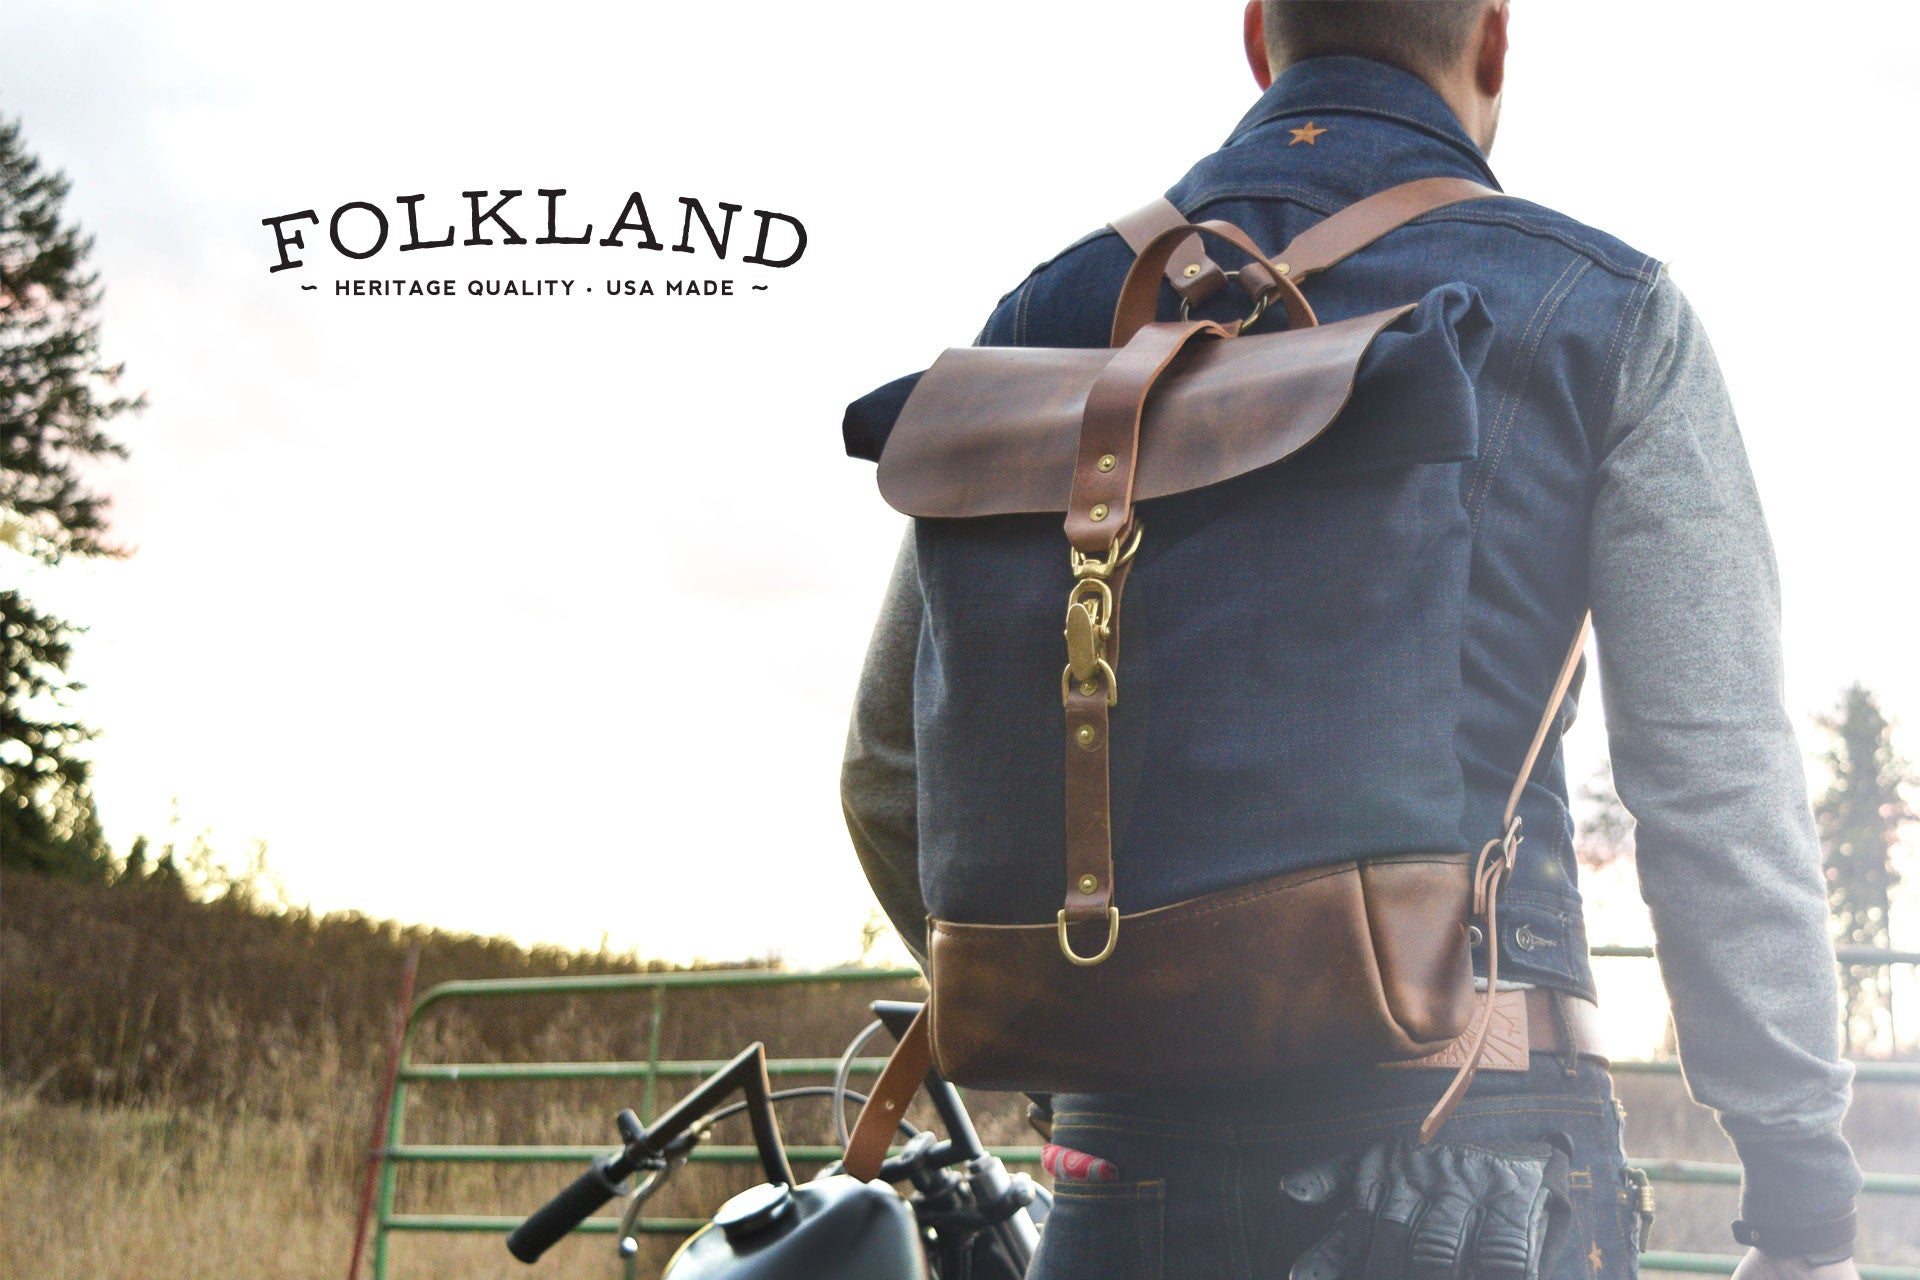 Enter Folkland, an American Heritage Brand